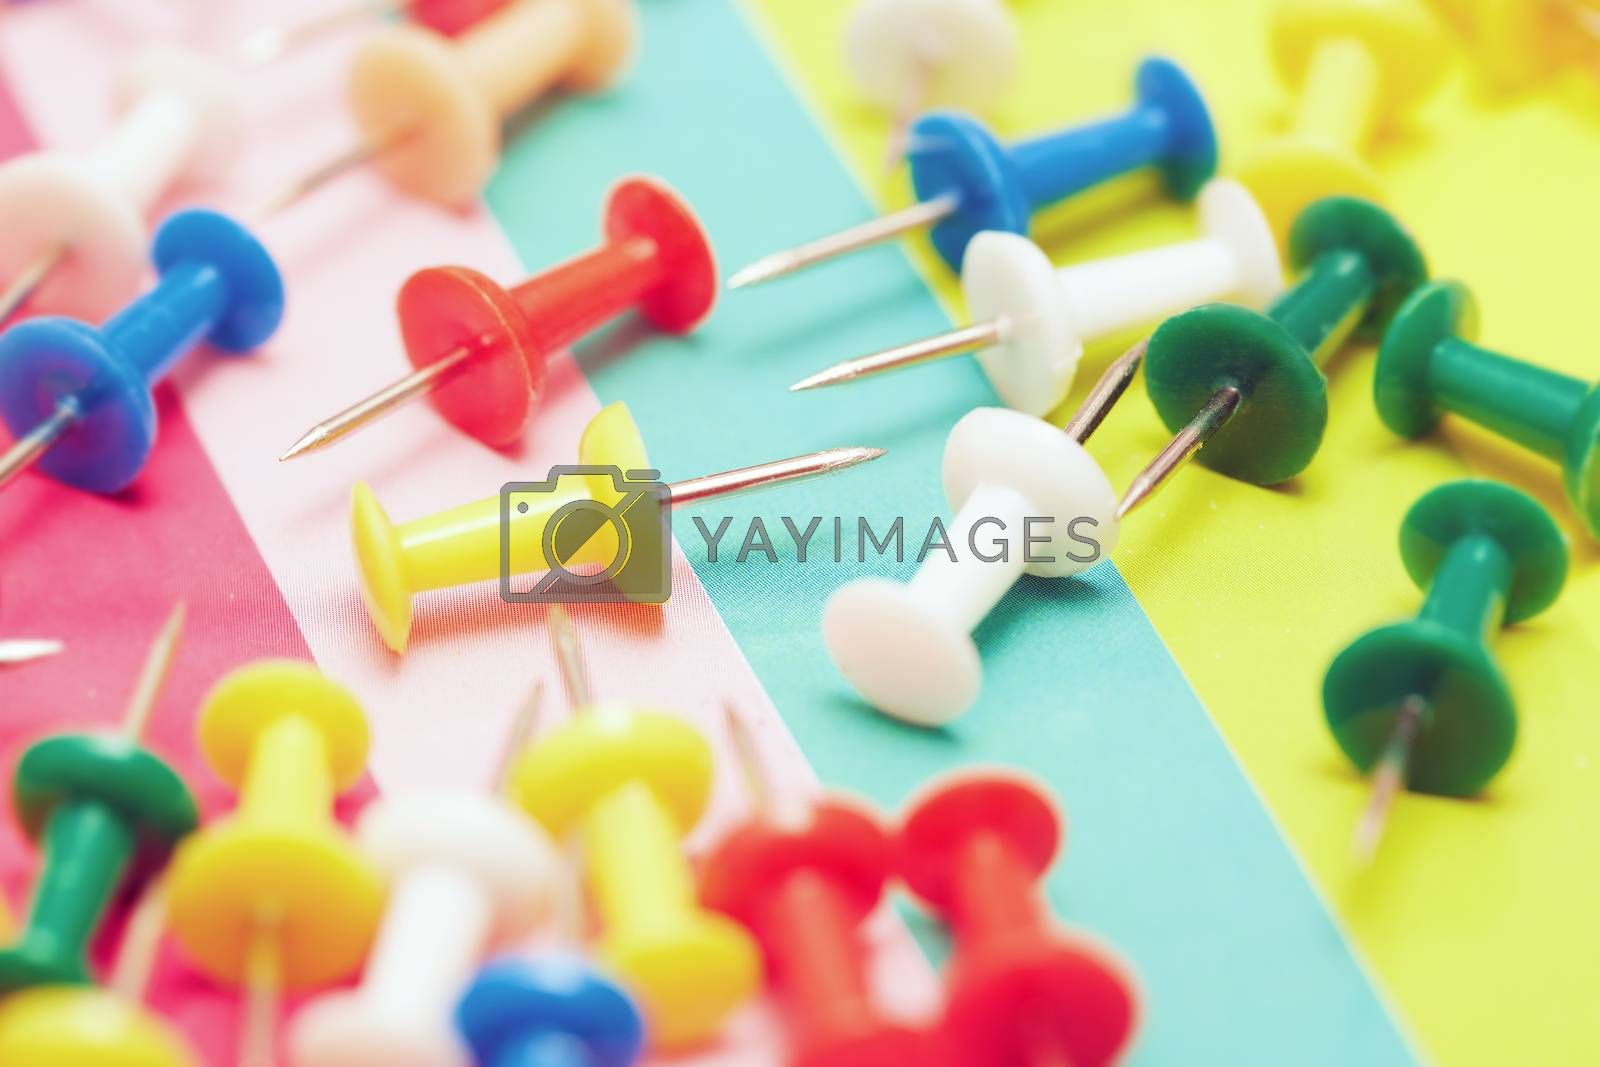 Close-up view on a multicolored set of pushpins